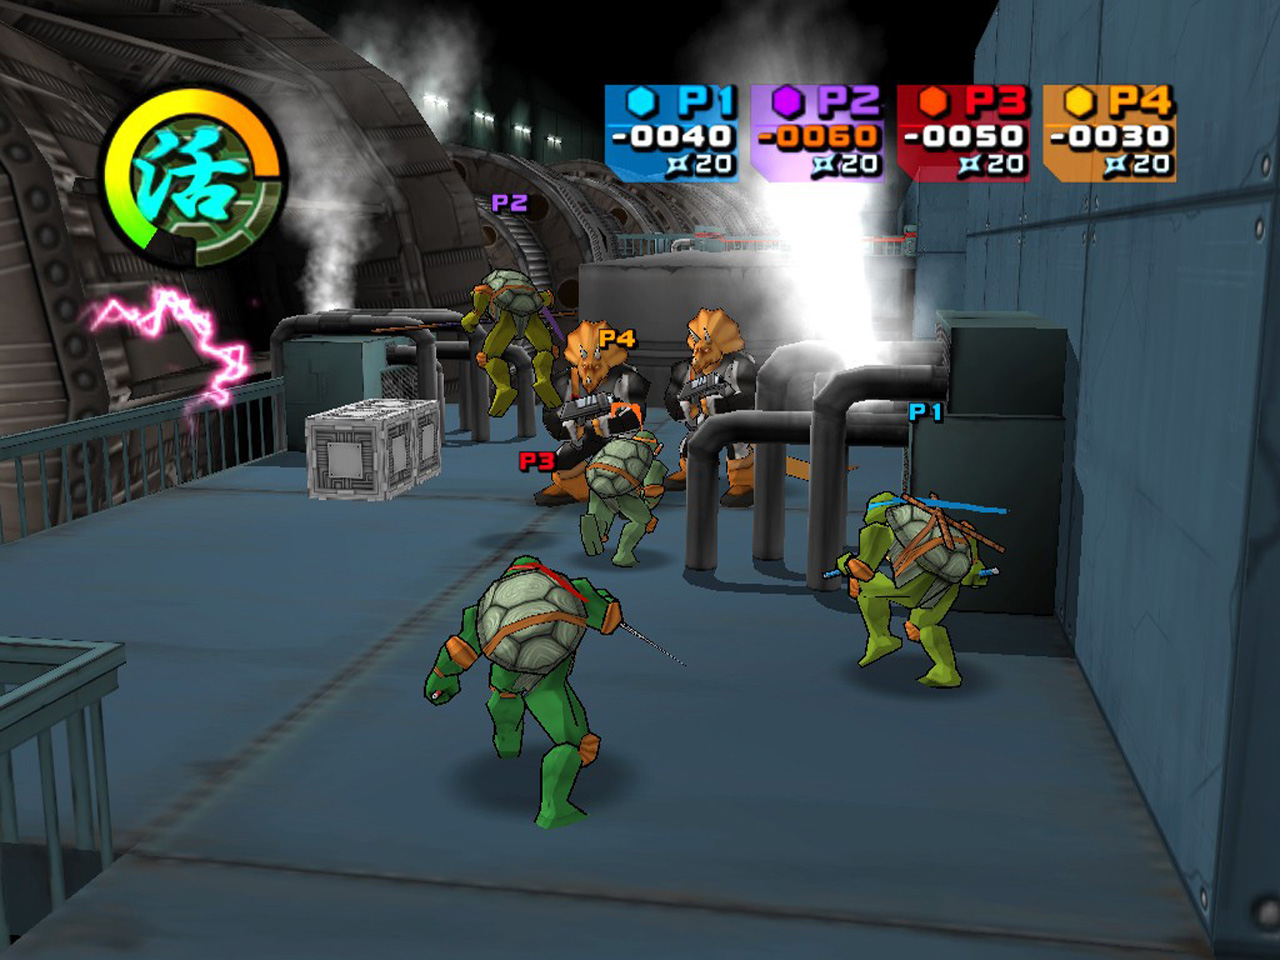 tmnt mutant ninja turtles games